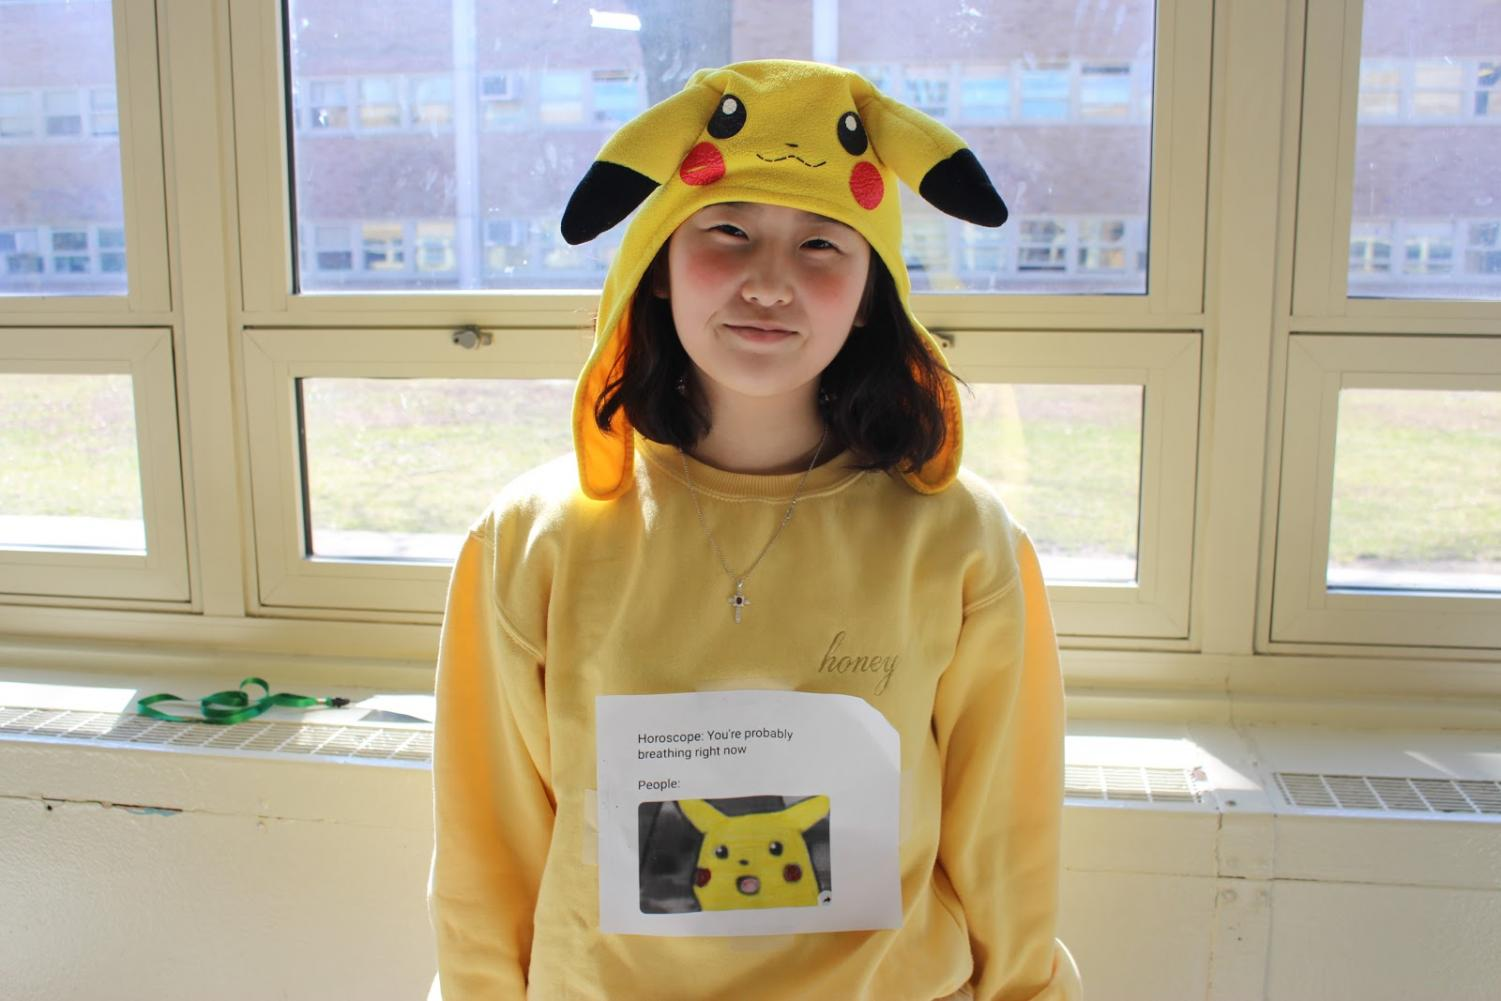 Pika+Pika%3A+SO+representative+and+senior+Ellen+Lee+poses+in+her+Pokemon-inspired+outfit.+As+a+member+of+SO%2C+Lee+disclosed+some+details+about+the+behind+the+scenes+of+Spirit+Week.+%E2%80%9CWe+have+meetings.+So%2C+all+the+SO+members+have+meetings+mostly+on+Tuesdays%2C%22+Lee+explained.+%22And+we+decide+which+day+is+most+appropriate+for+each+day.%E2%80%9D